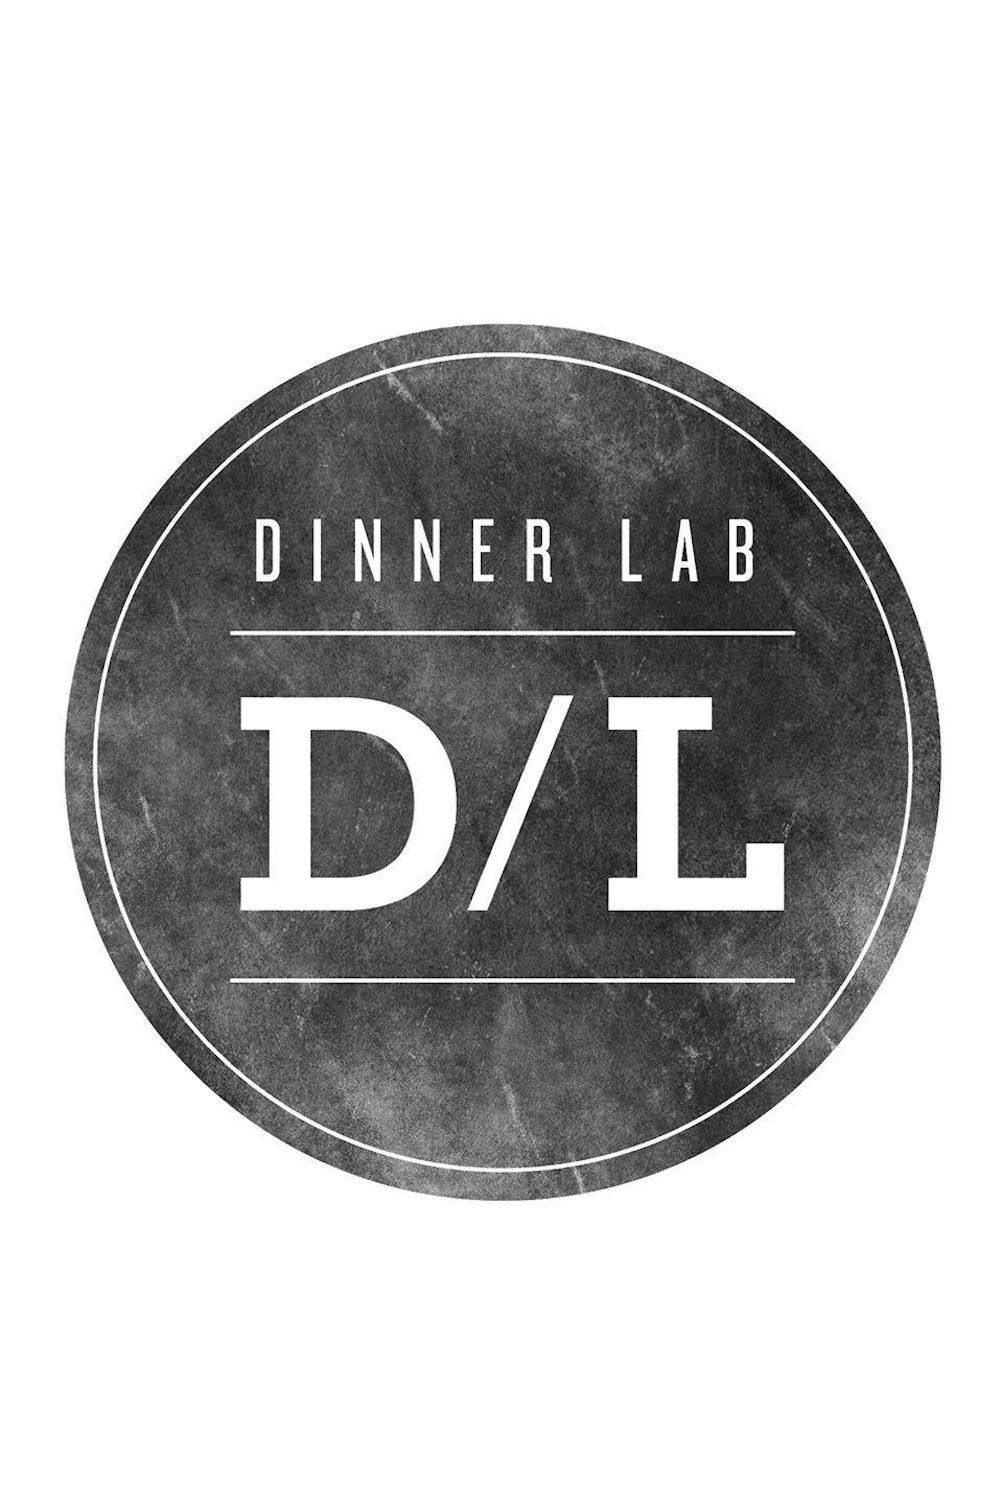 "<p>Dinner Lab is a pop-up dining experience that treats members to cool food in even cooler venues. You can buy any denomination as a gift, including a membership (which gives your diners VIP perks, though they still need to buy the actual dinner) or just cash towards the cause (which they can use to buy the dinners). Or, if you're feeling ultra nice this year—you can do both. </p><p>Dinner Lab Membership or Tickets, $175 or any amount&#x3B; <a href=""https://dinnerlab.com/"" target=""_blank"">dinnerlab.com</a>.</p>"